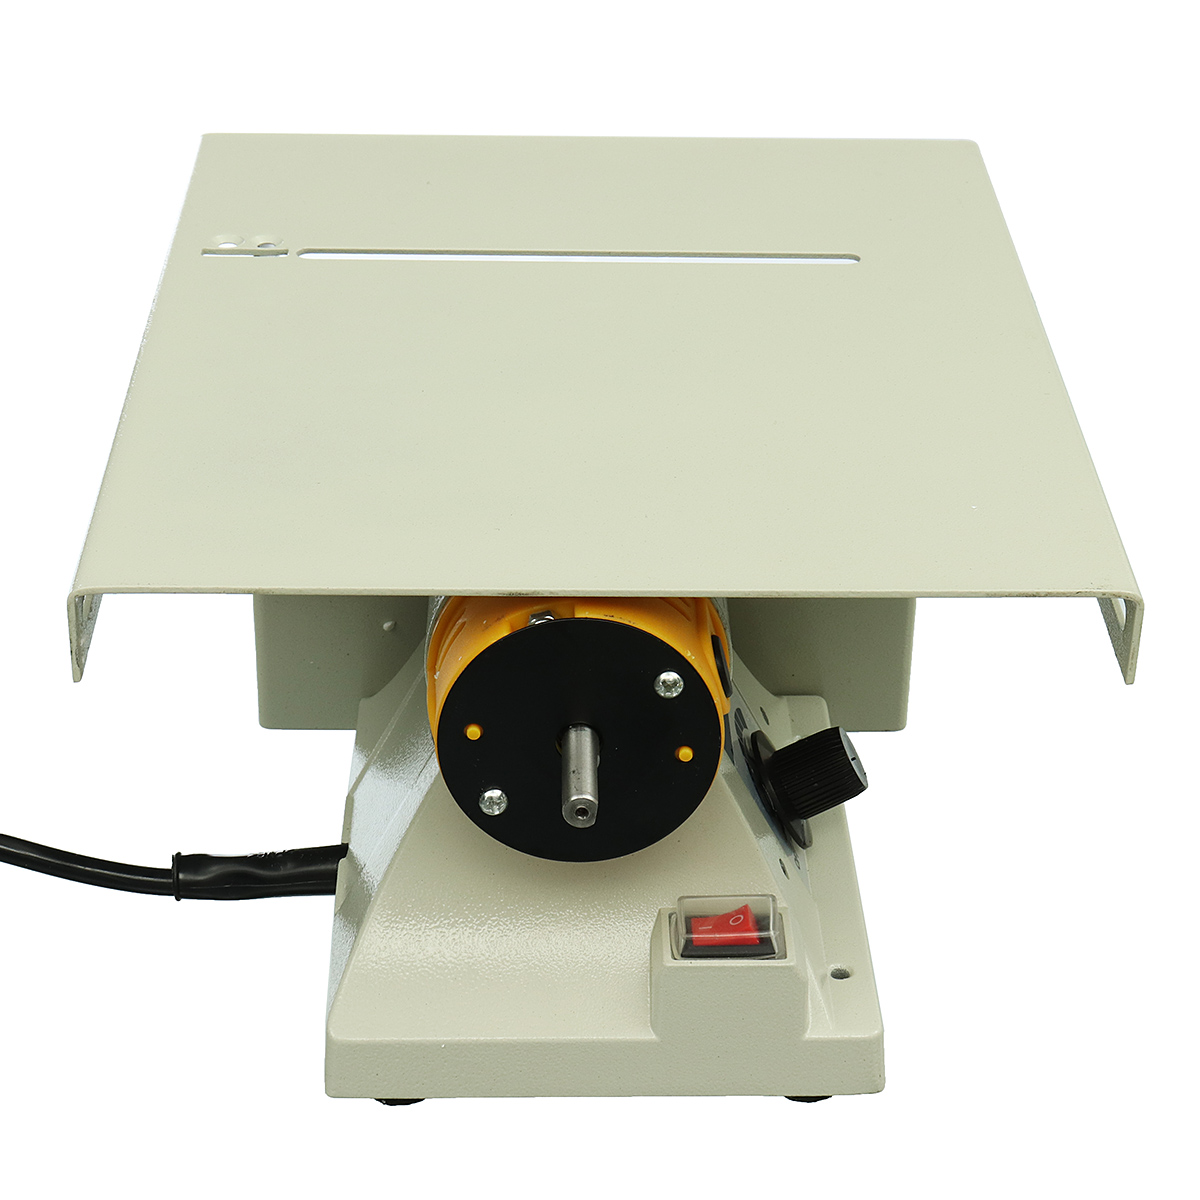 350w Mini Table Bench Saws Woodworking Bench Lathe Electric Polisher Grinder Cutting Saw Power Tools Alexnld Com